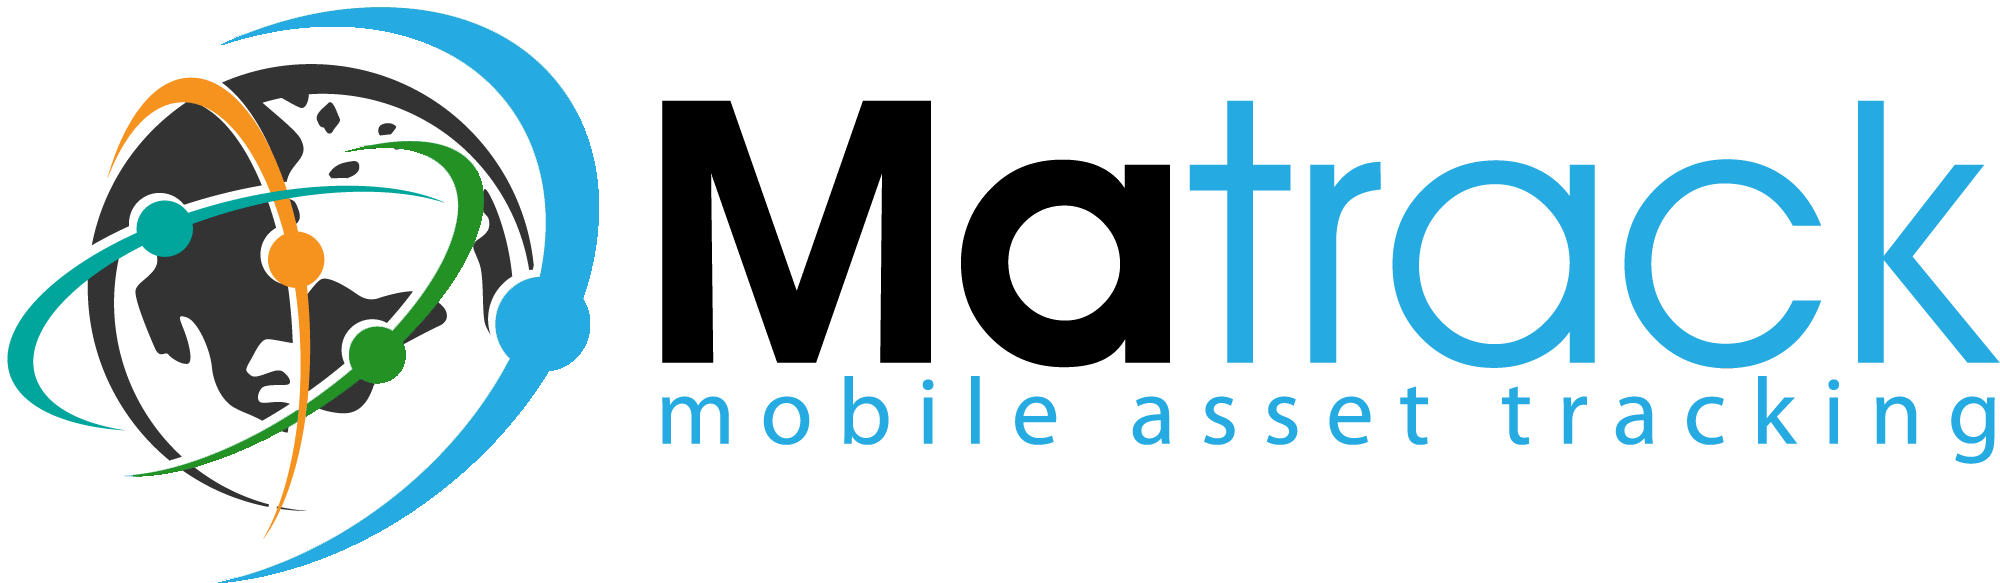 Matrackinc Logo